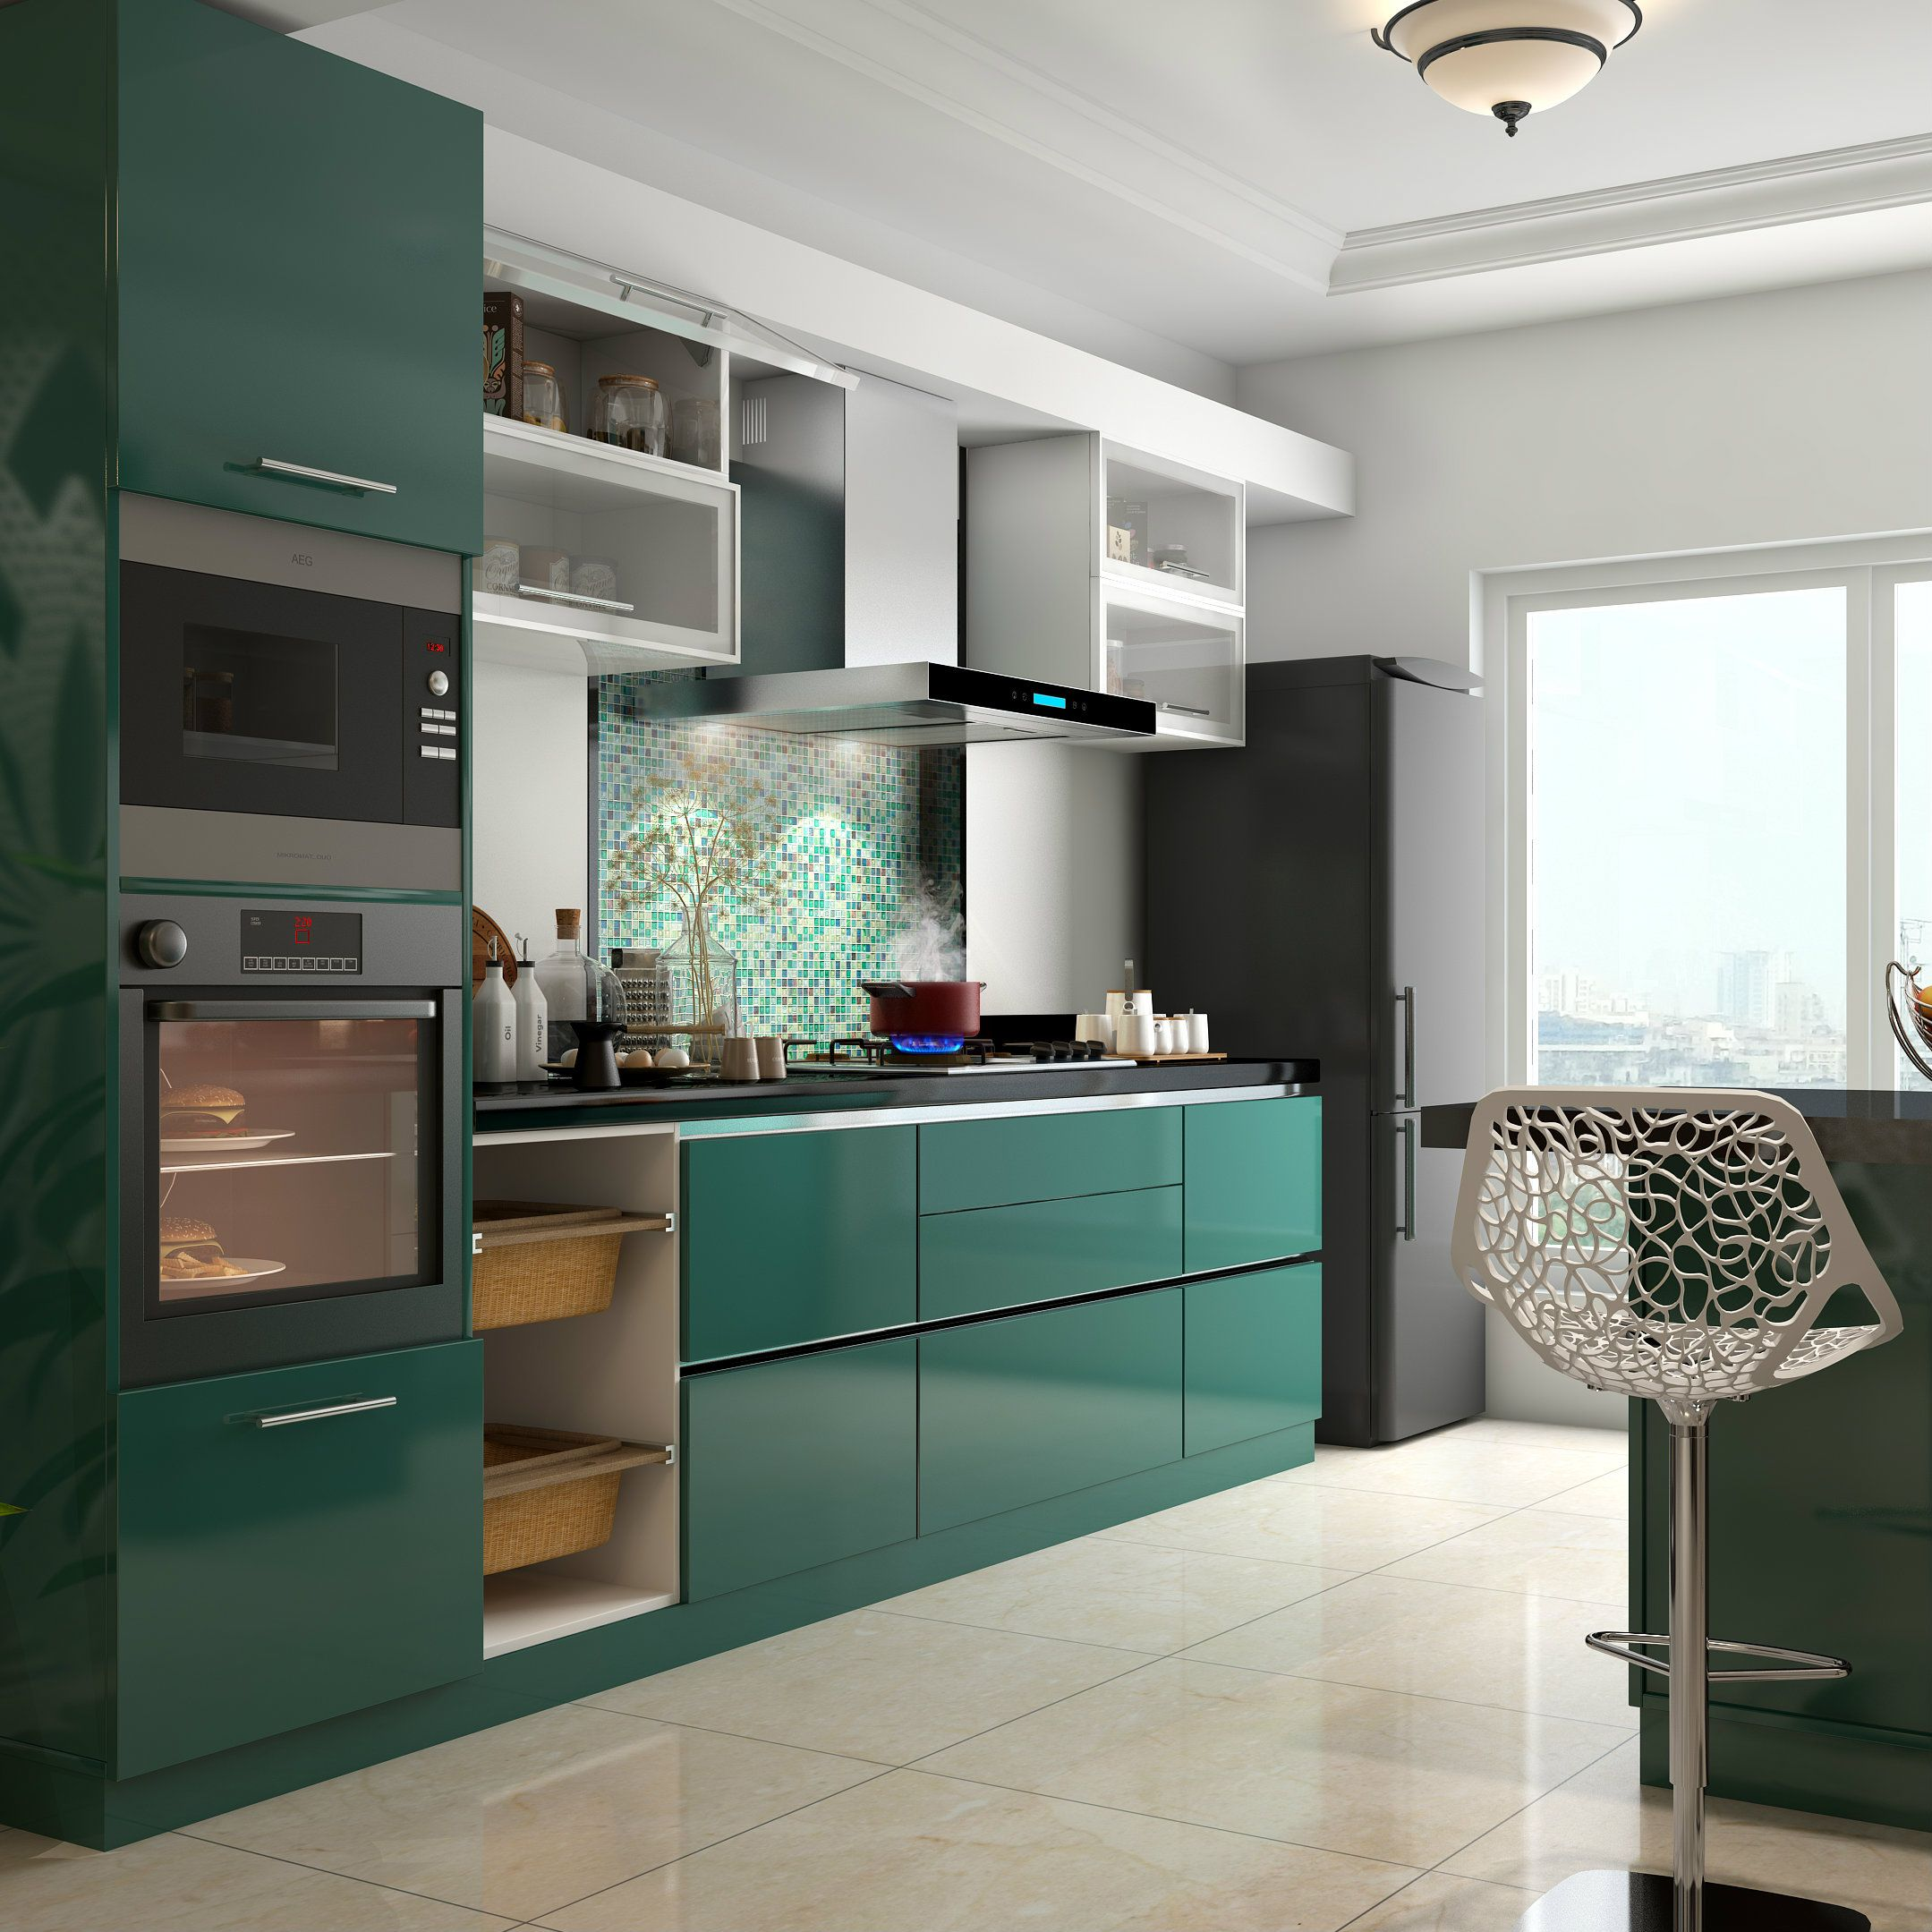 Pictures Of Modern Kitchens: Glossy Green Cabinets Infuse Vitality To This Kitchen